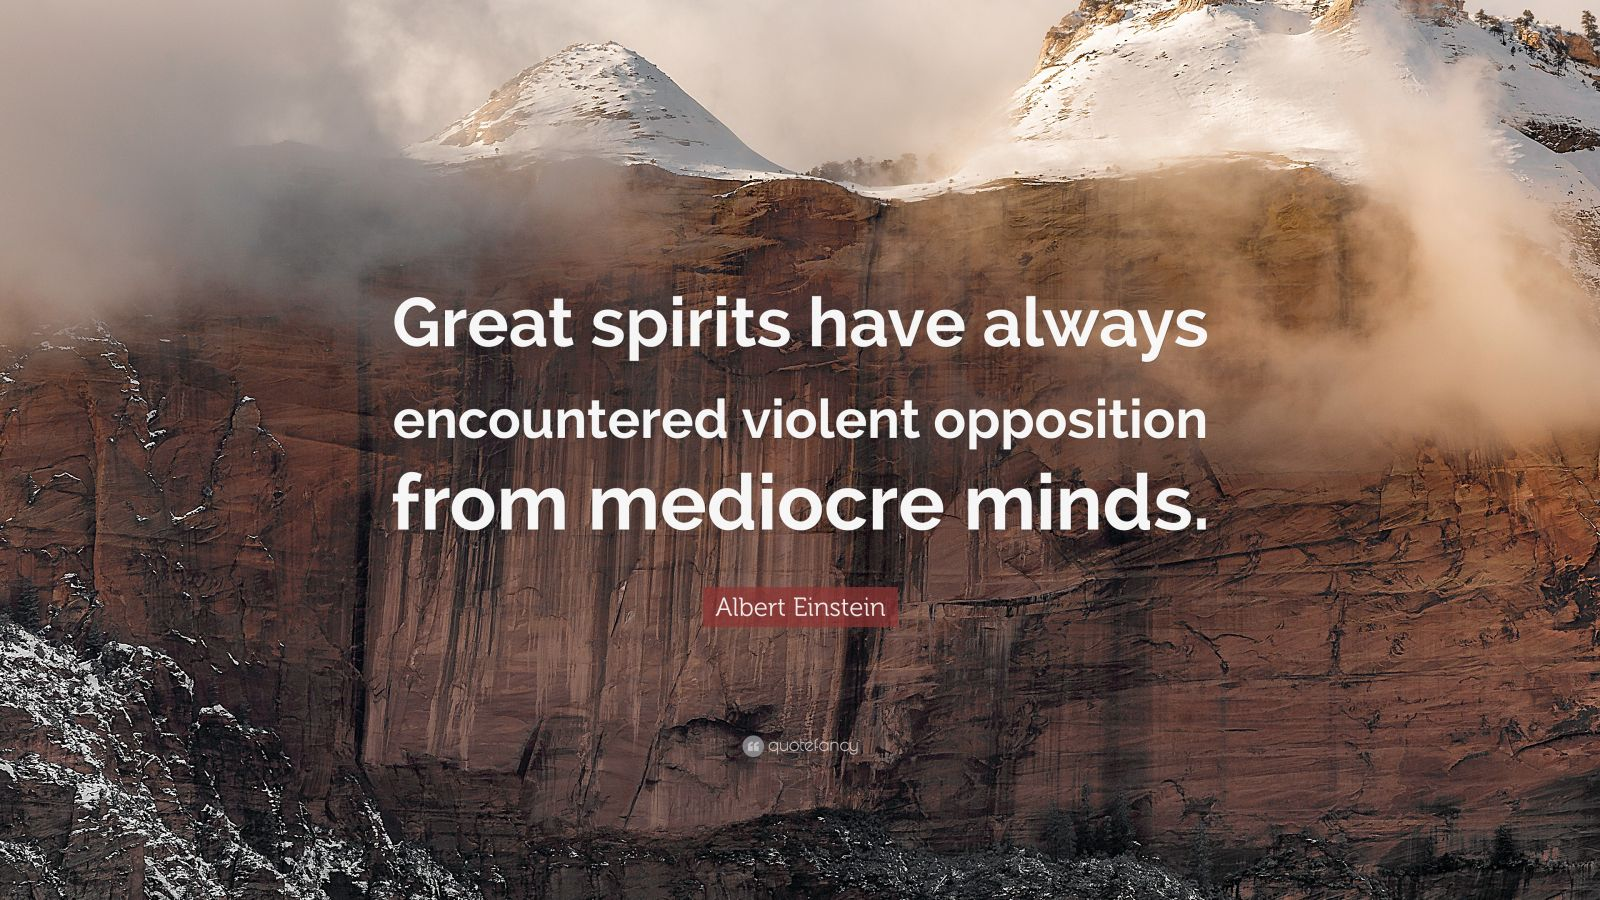 Beautiful Quotes Inspirational Wallpapers Albert Einstein Quote Great Spirits Have Always